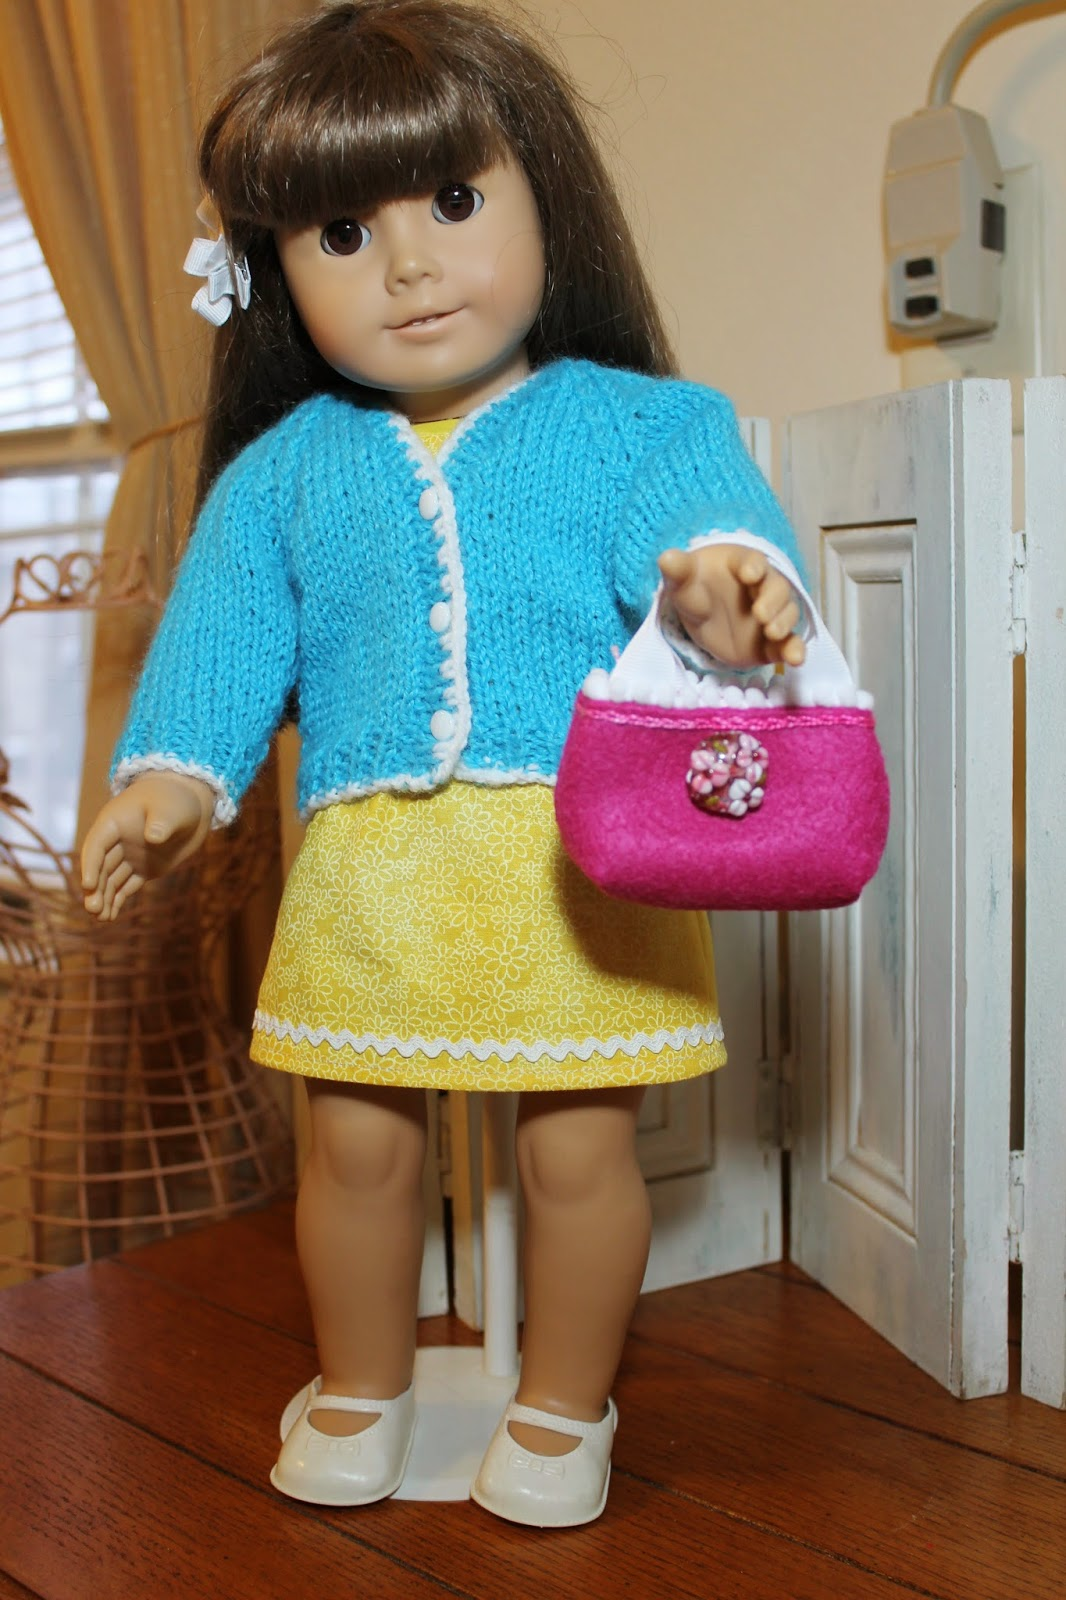 http://knitnsewstudio.blogspot.com/2015/02/spring-outfit-for-american-girl-doll.html